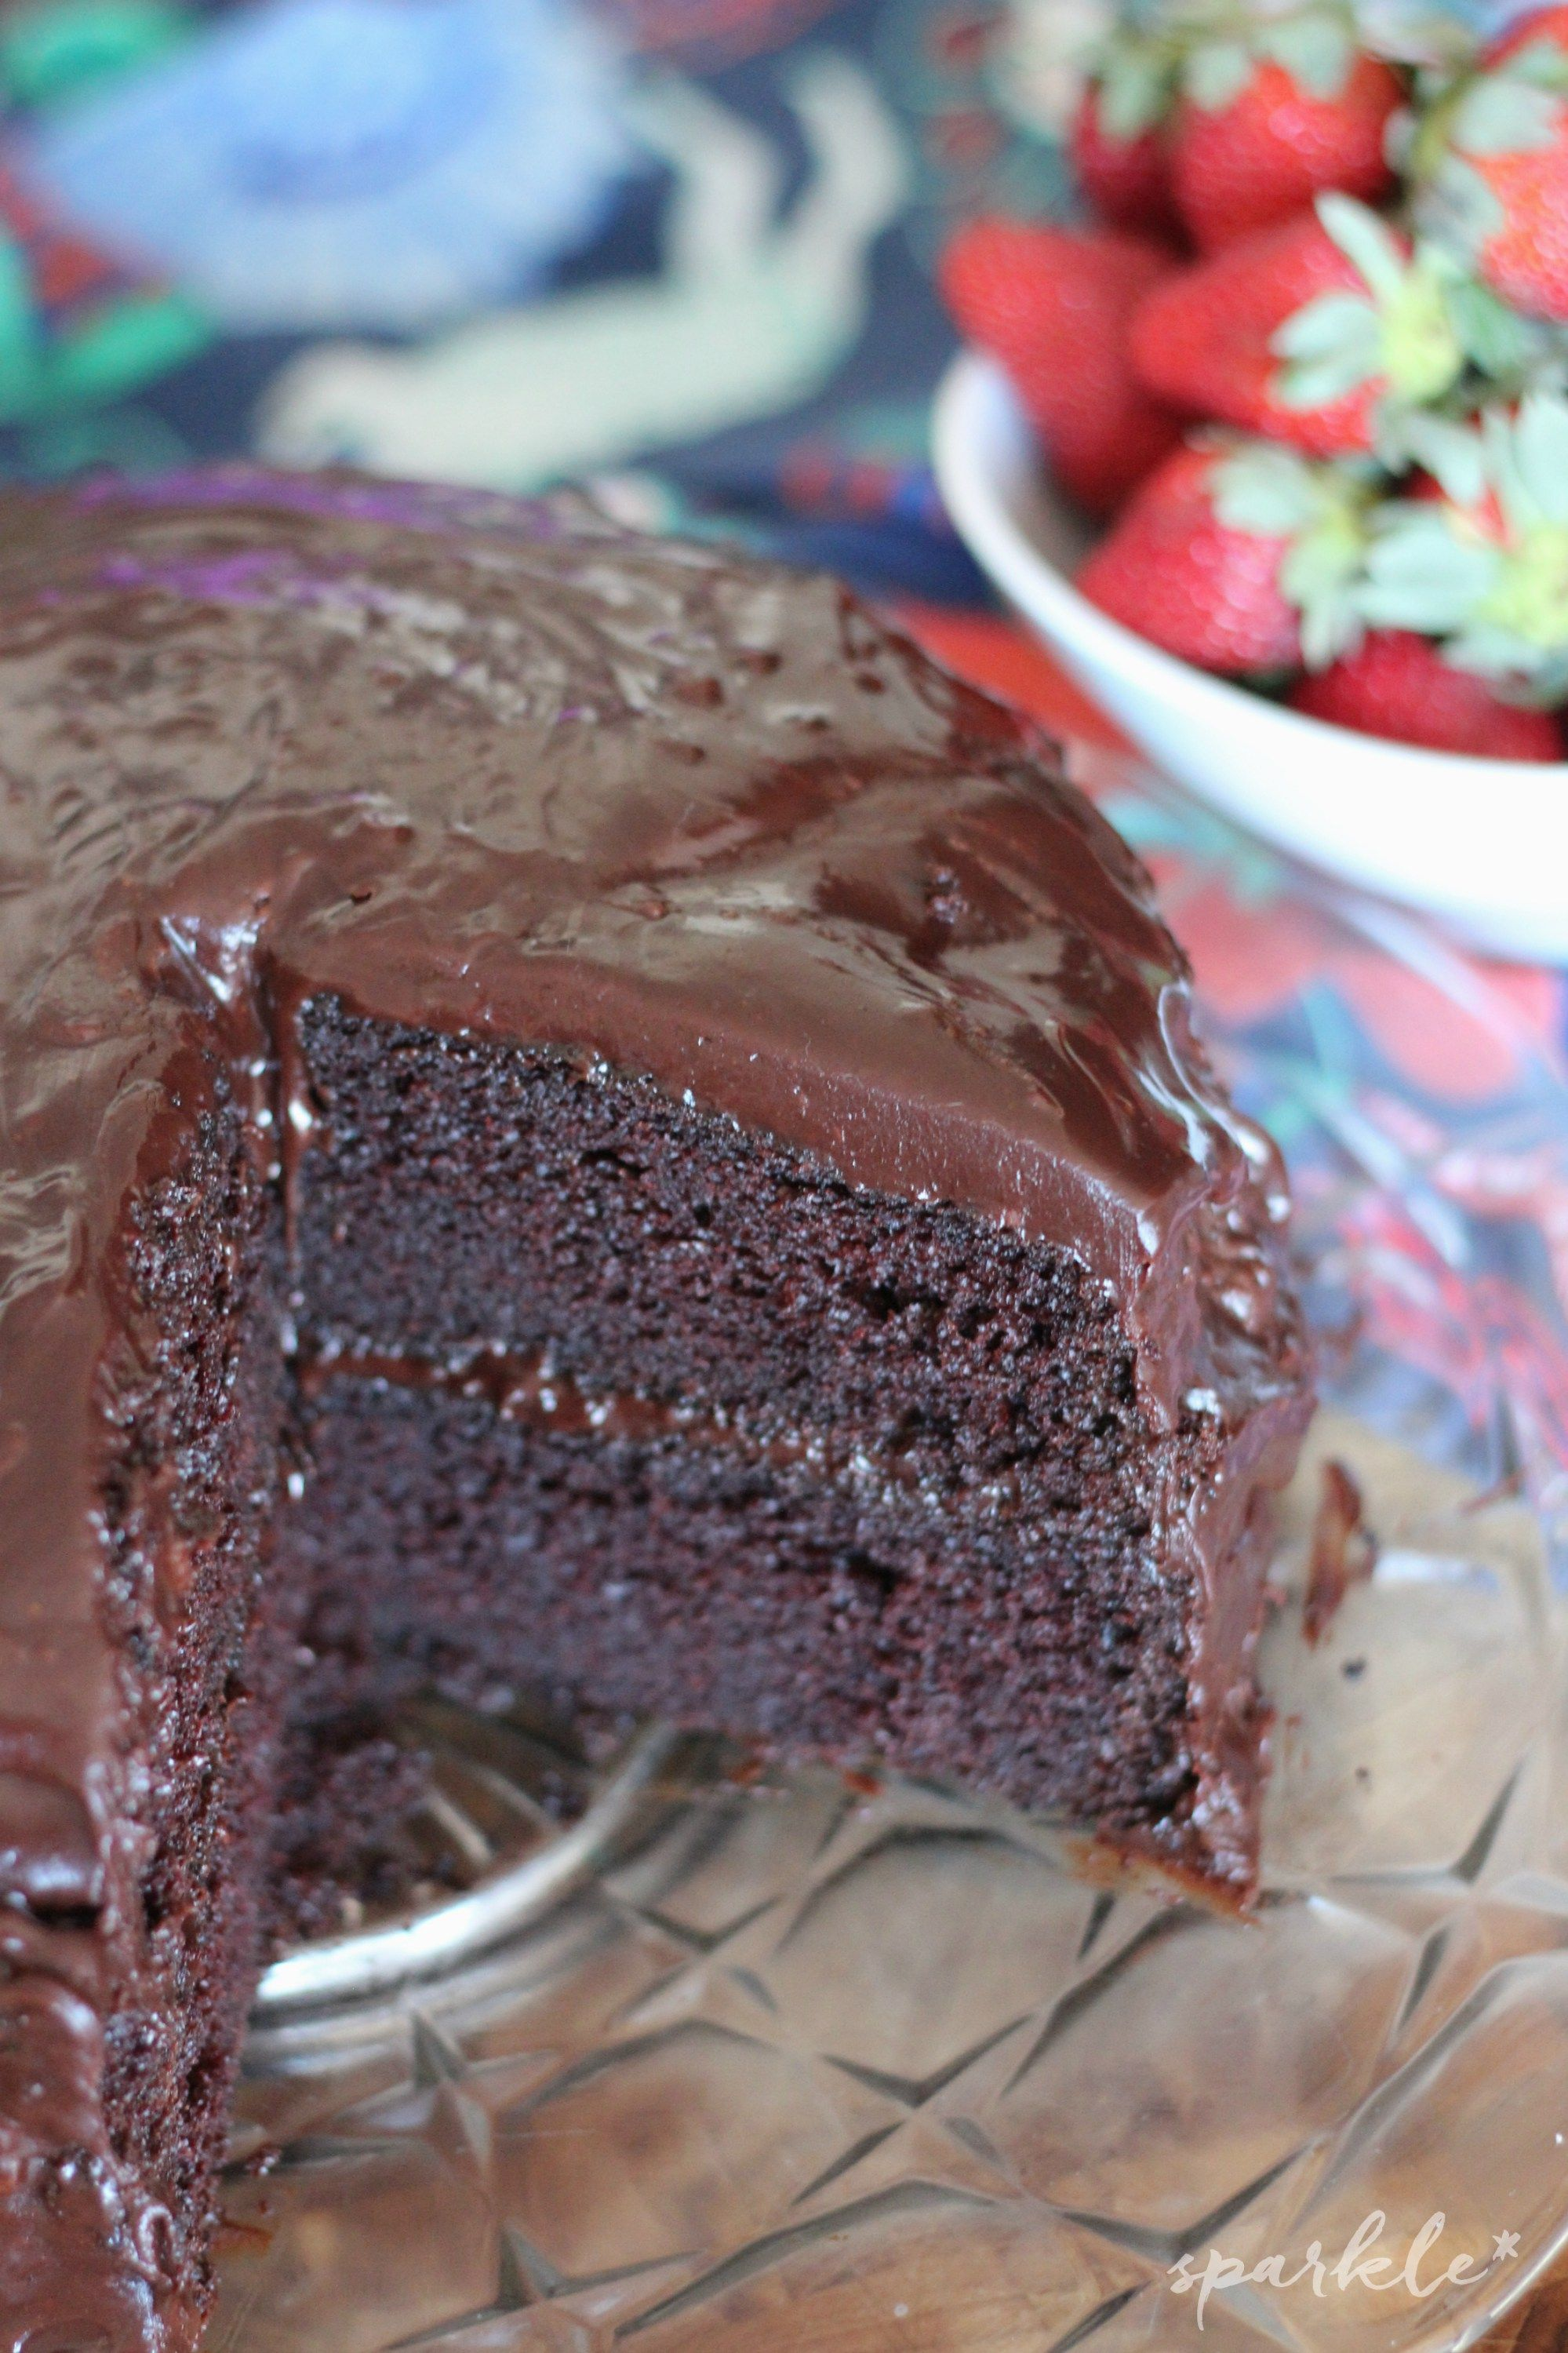 Chocolate Buttermilk Layer Cake This Is The Perfect Cake For The Imperfect Baker This Recipe Makes Cake Is Moist And Decadent A Wine Recipes Food Apple Glaze